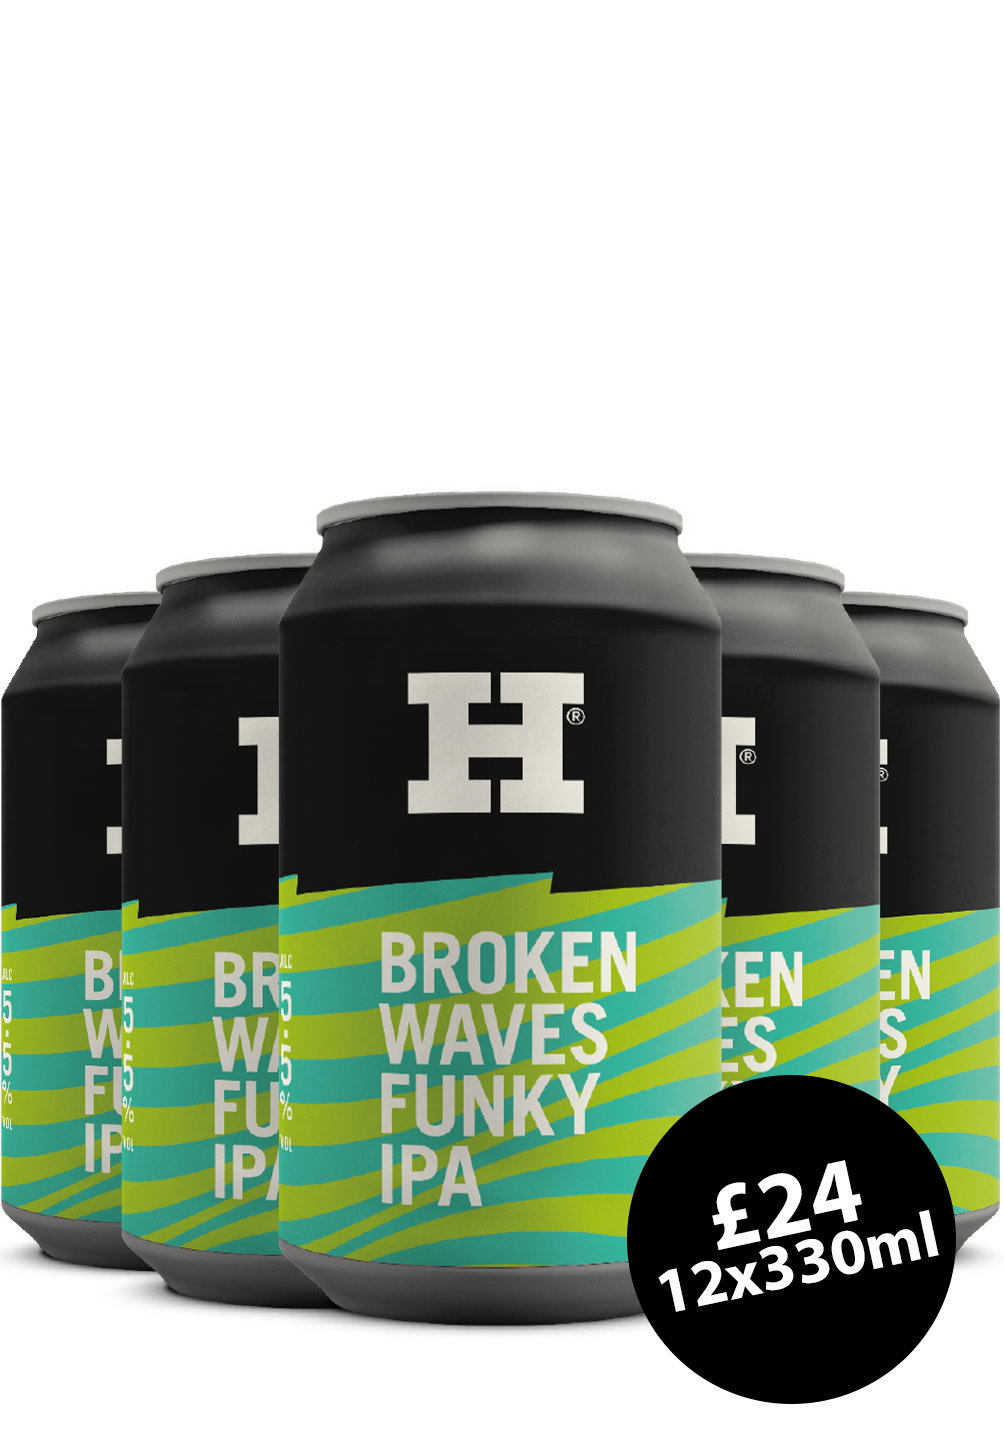 Broken Waves Funky IPA